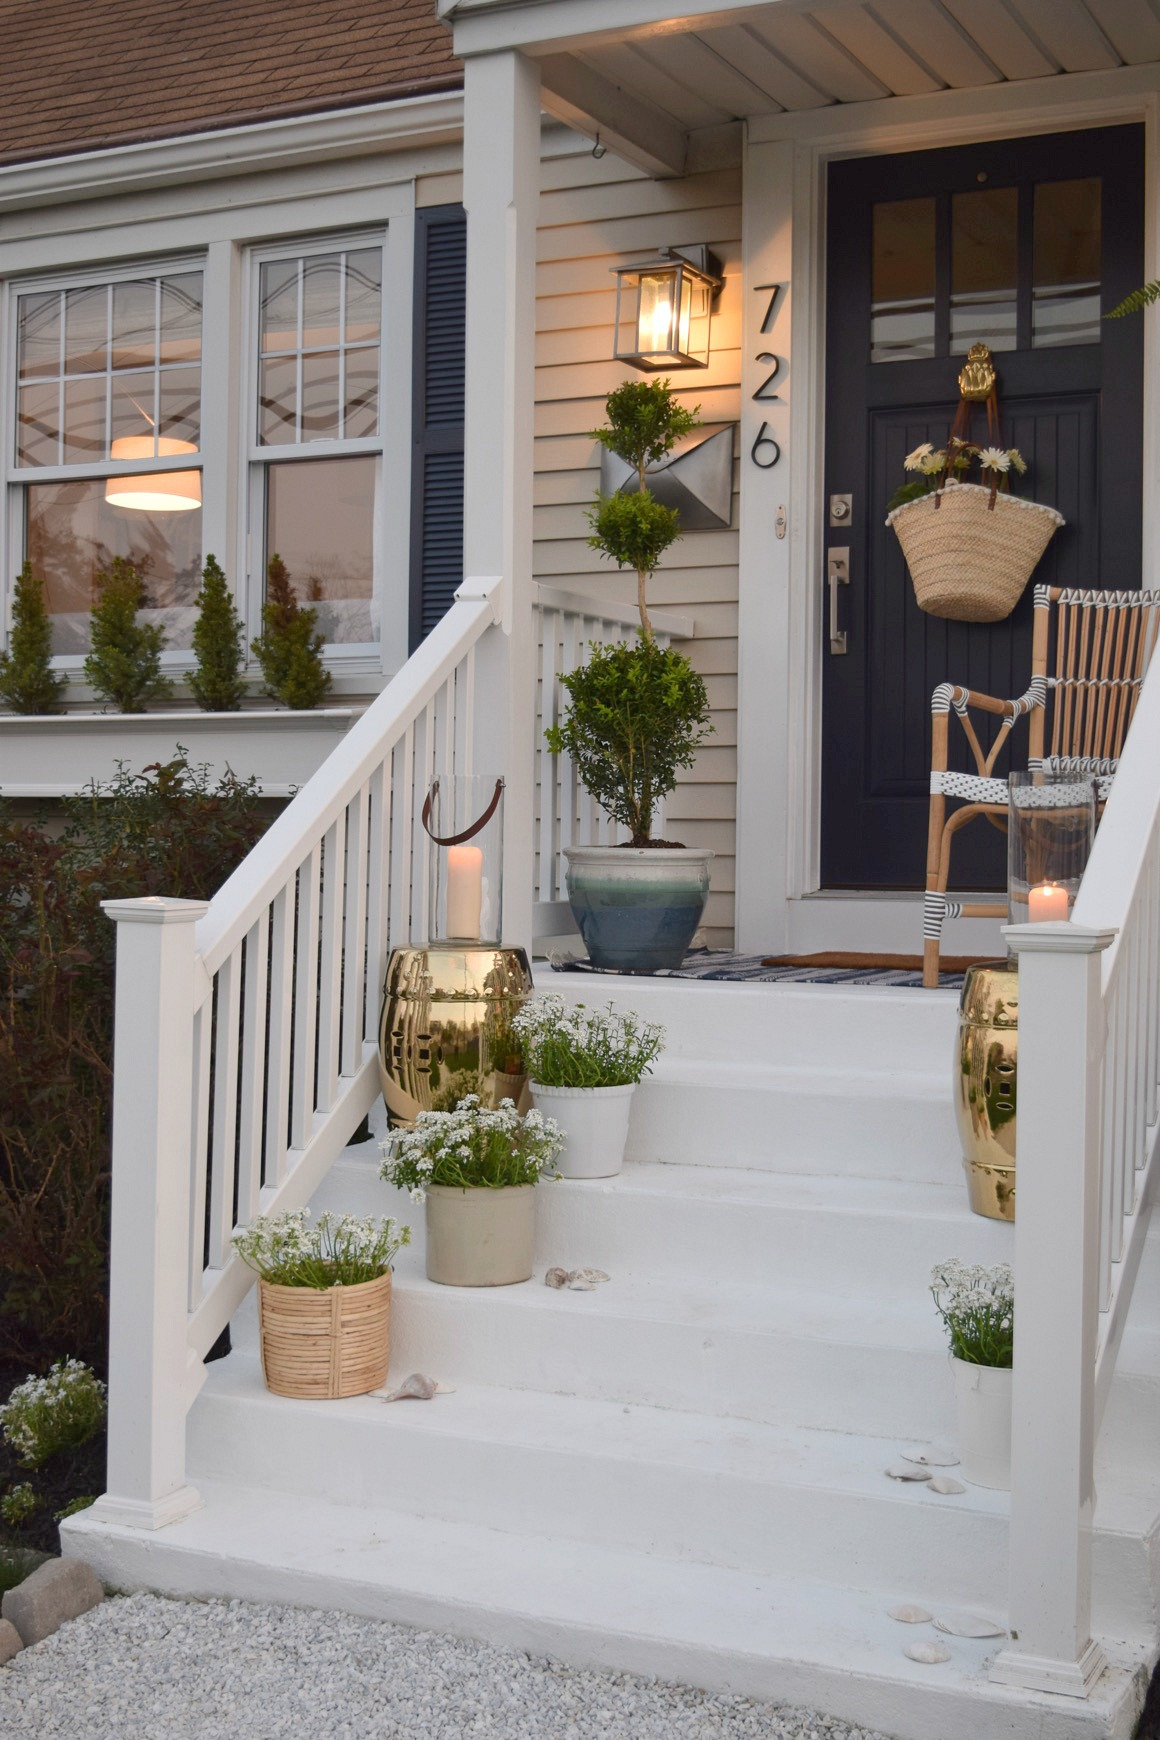 Front porch ideas and designing the outdoors nesting for Front porch designs ideas